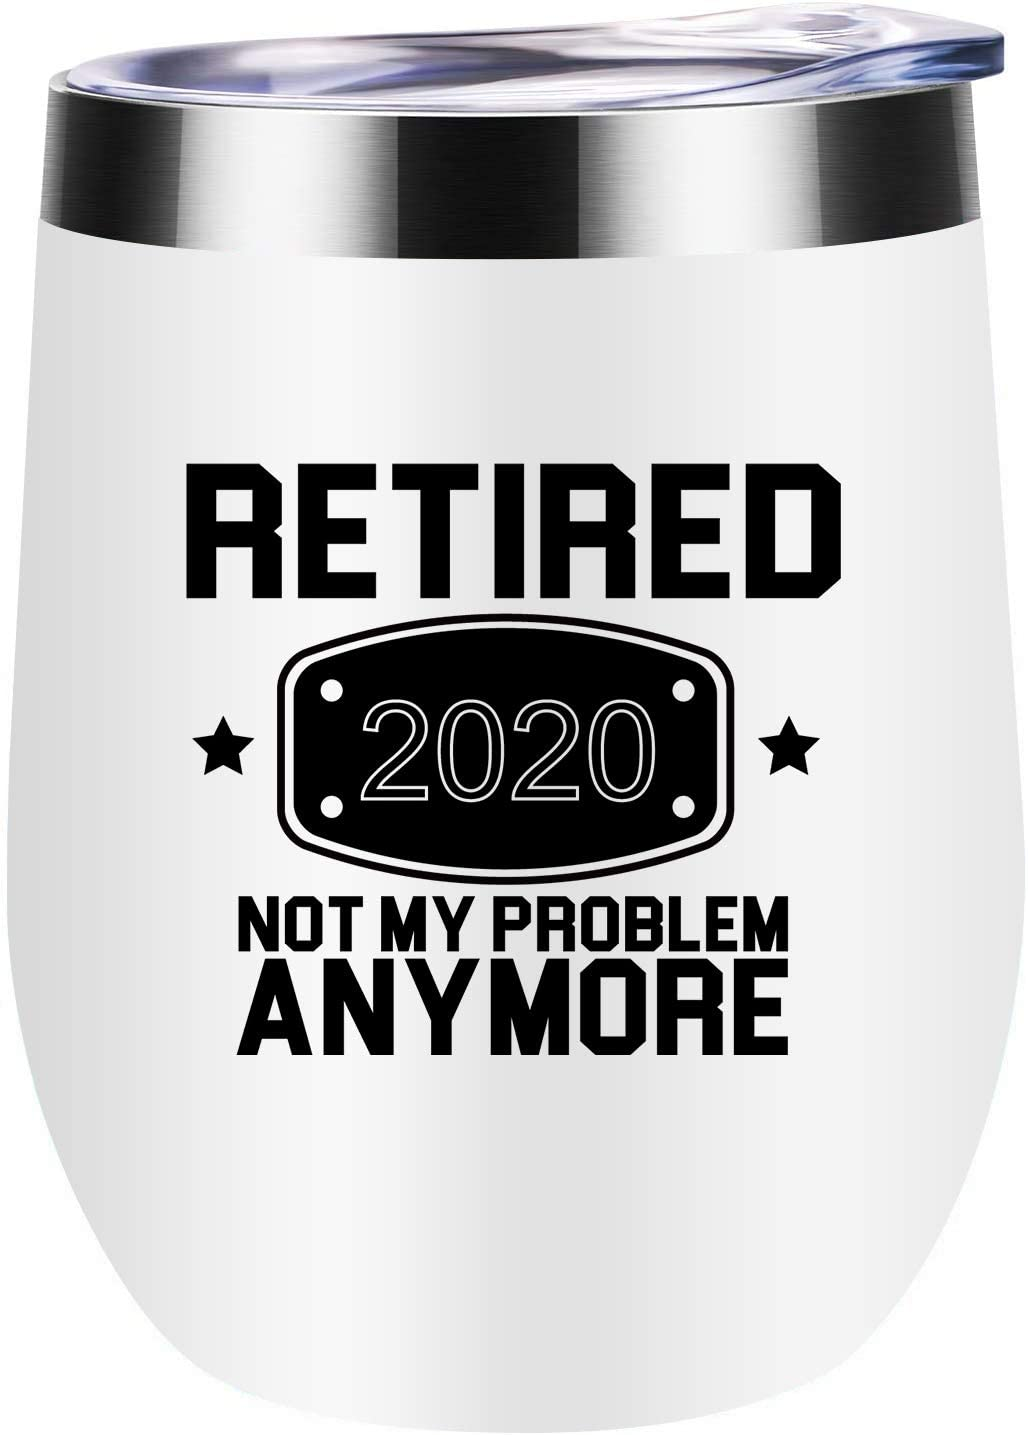 2020 Retirement Gifts for Men and Women Funny Retired 2020 Not My Problem Any More Wine Tumbler Retirement Gifts for Office Coworkers Boss Wife Mom Sister Friends Retirees Husband Dad (White)